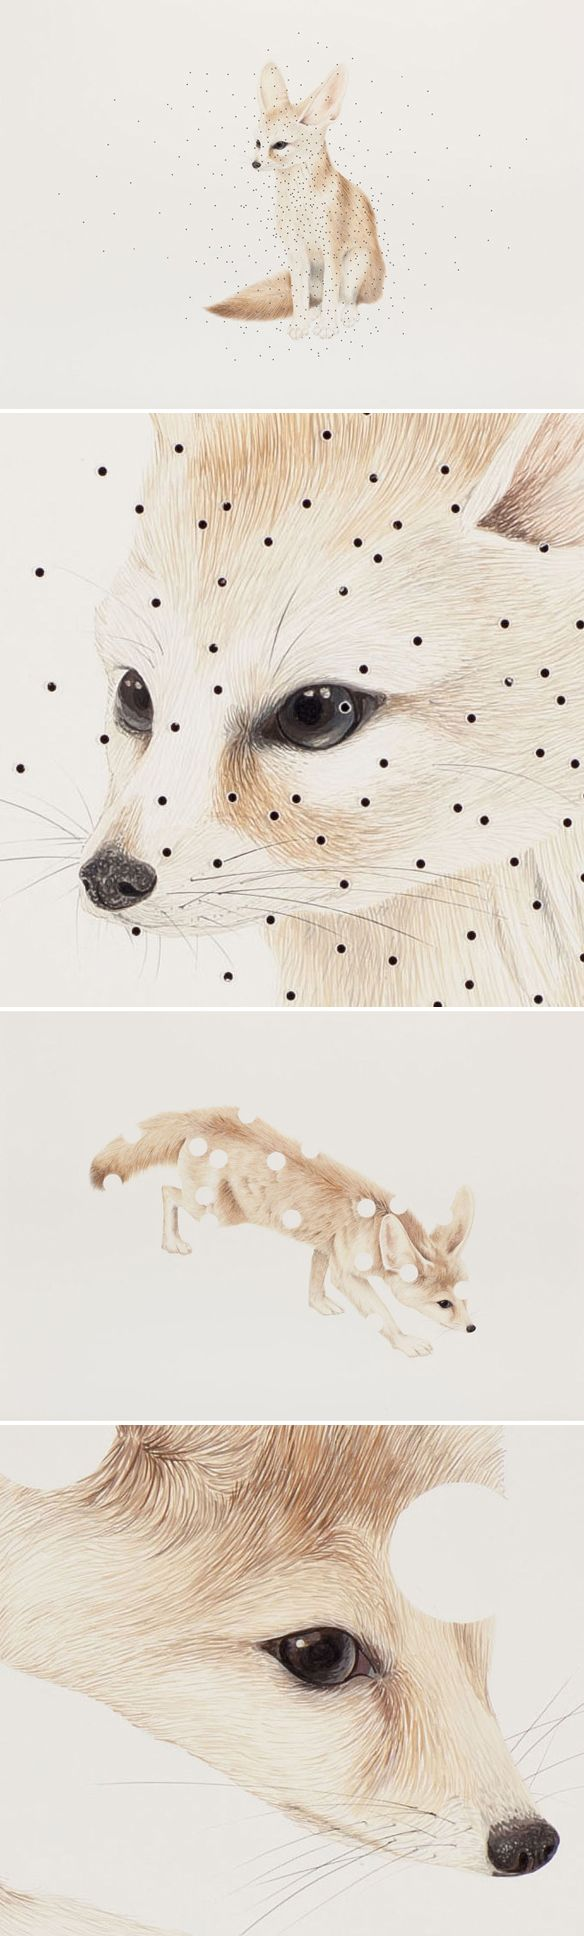 marcela cardenas - gouache on board (with perforated holes)